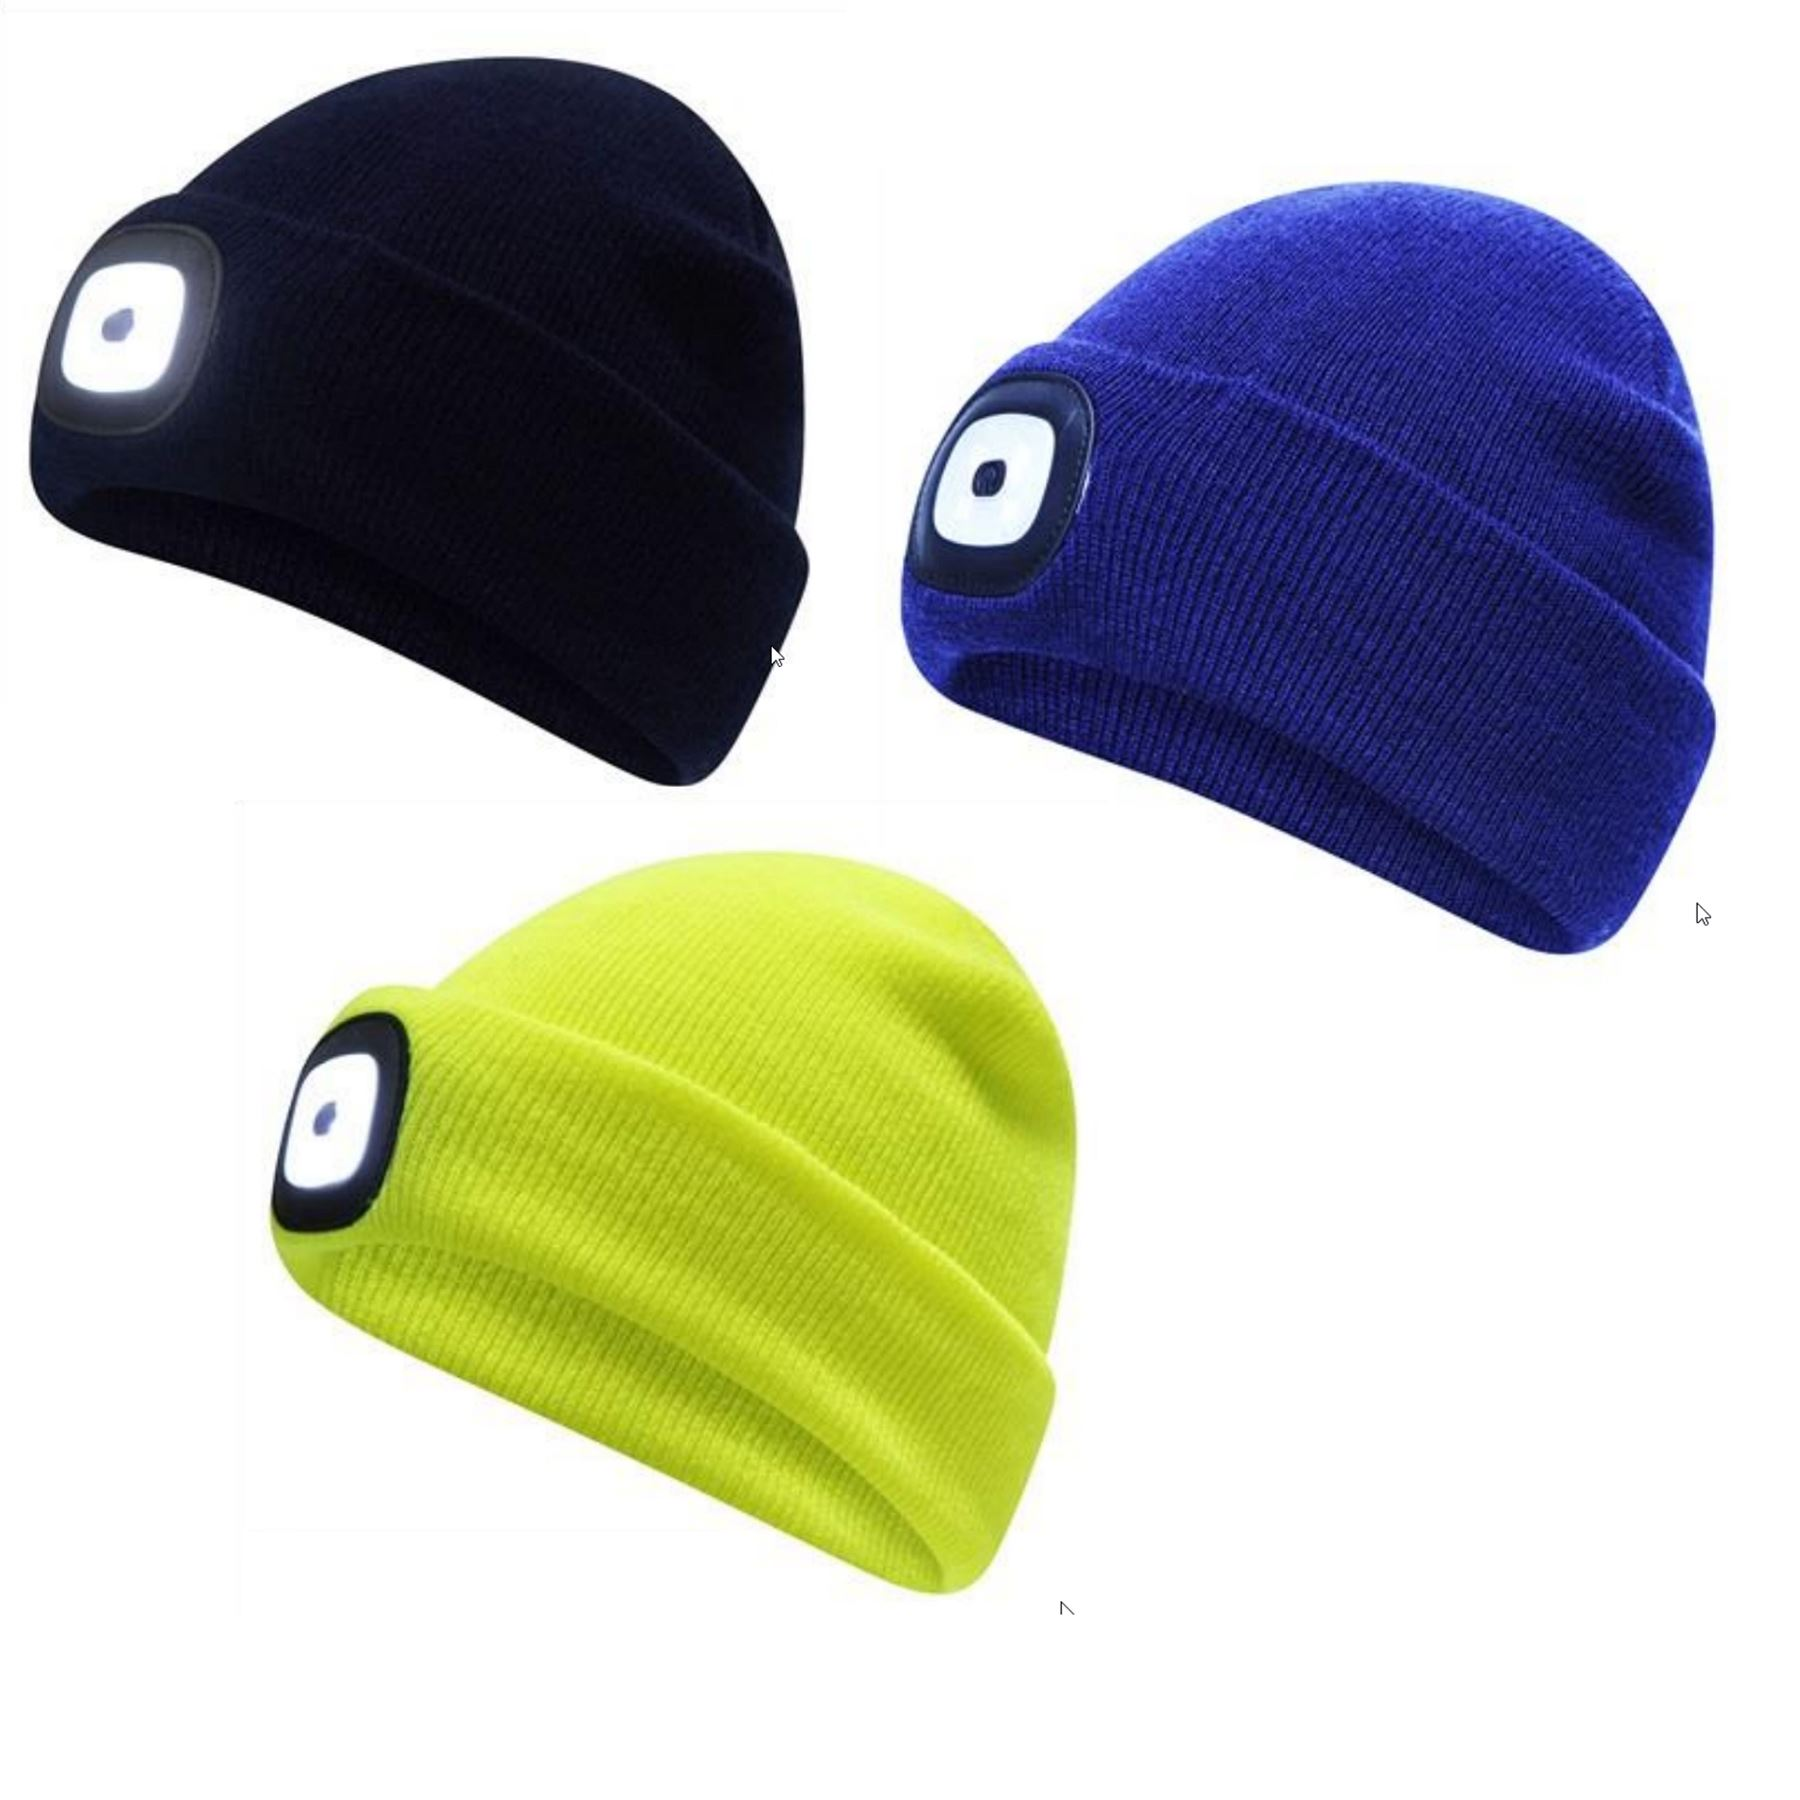 Details about Pro Climate Performance Apparel Unisex Adults Built-In LED Head  Torch Beanie Hat 0f5052b7b10